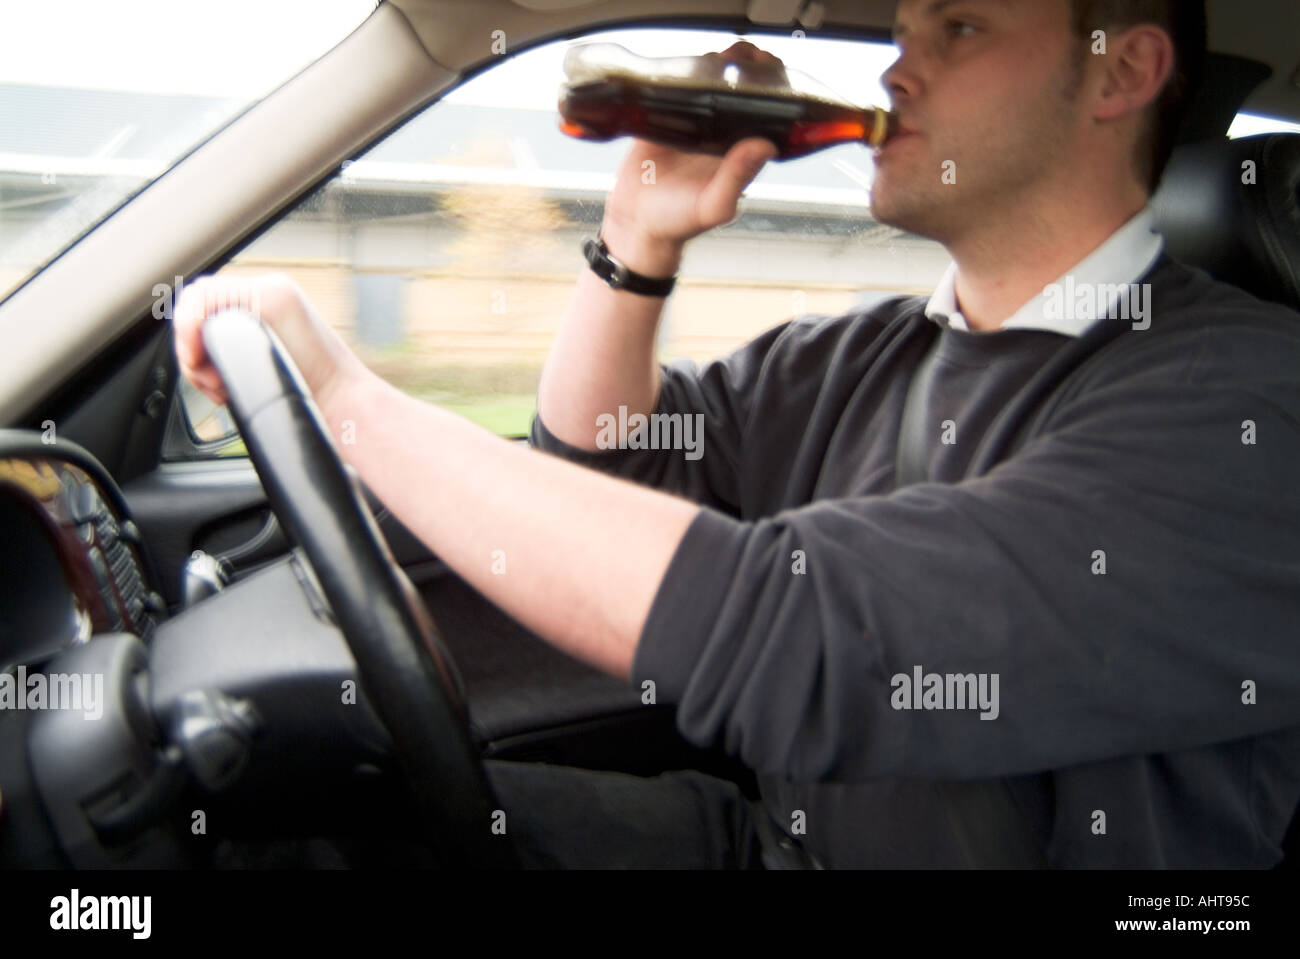 Drink Up - Drunk Driving Should Be Legalized